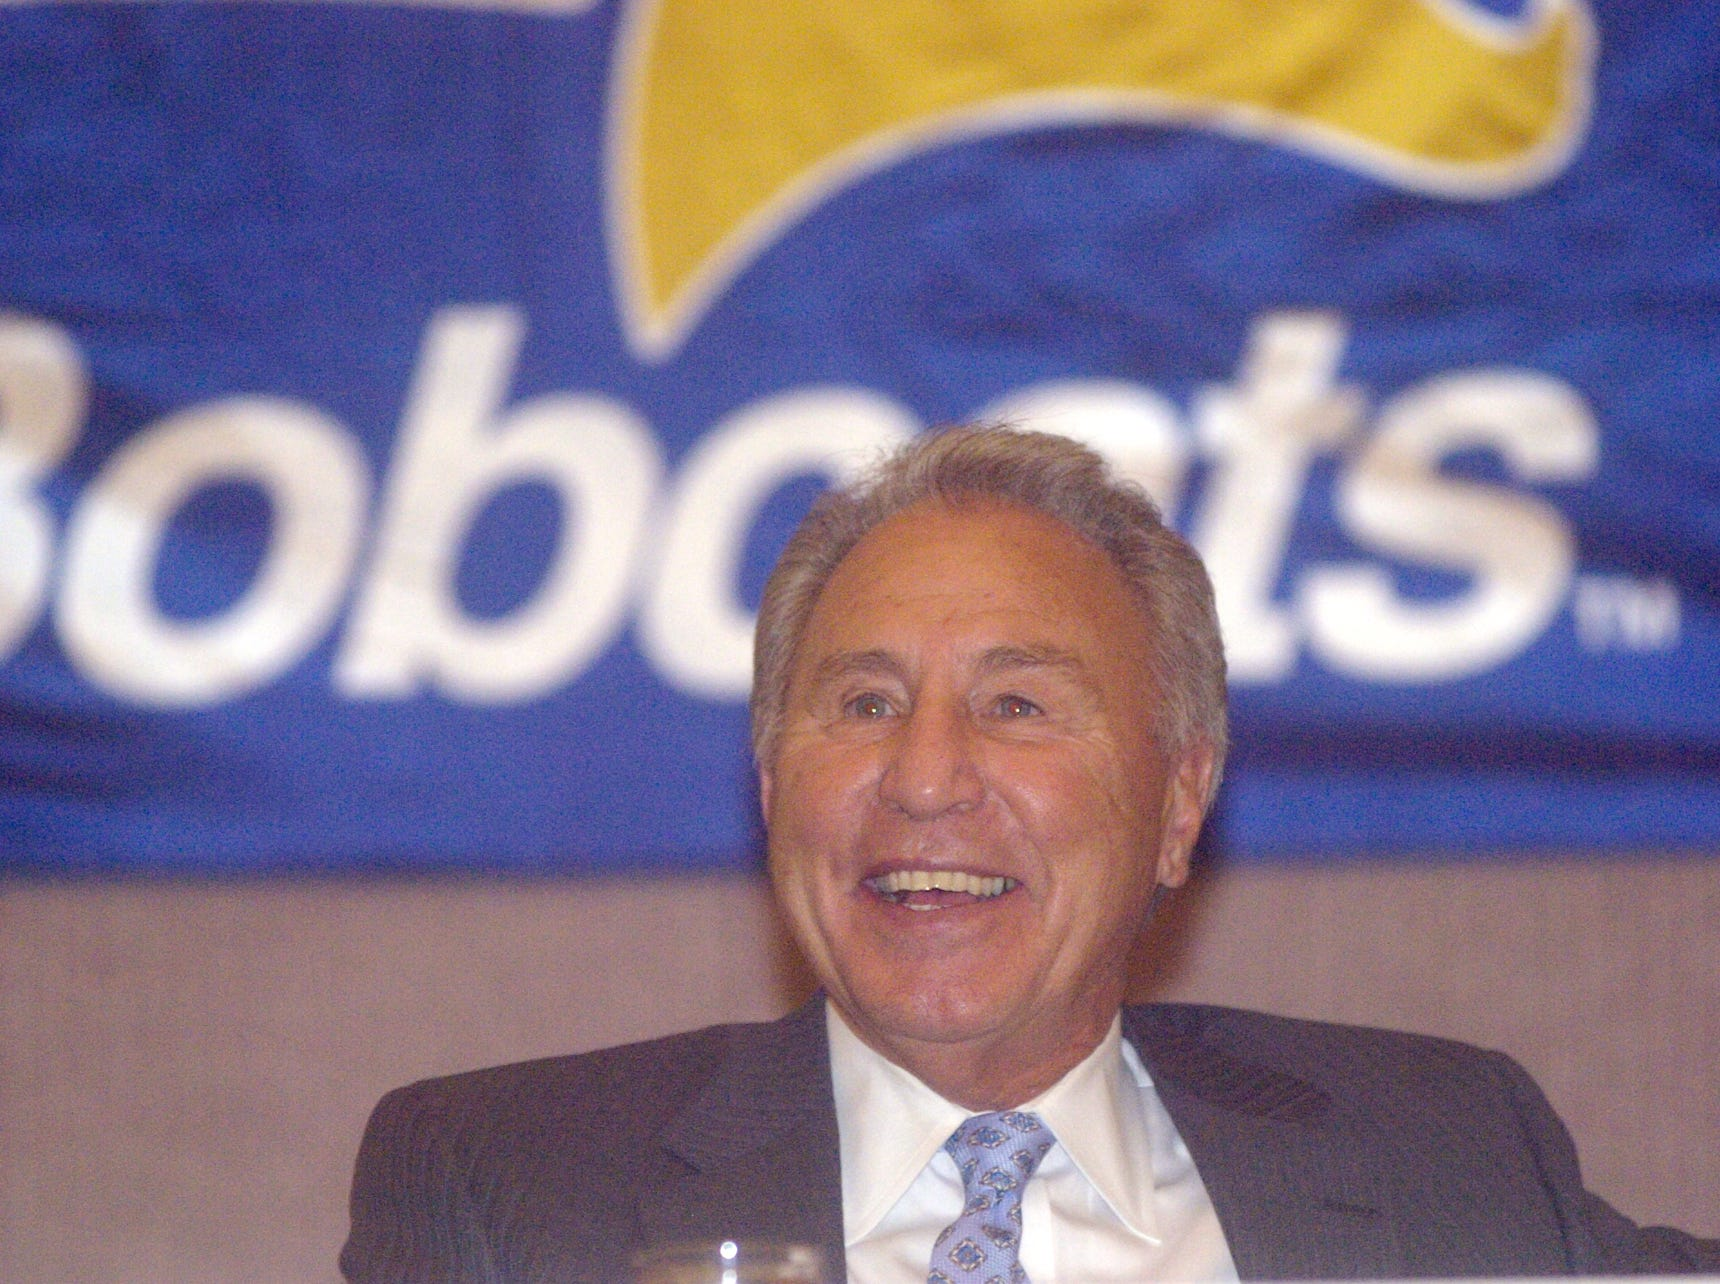 Tribune Photo by Rion SandersESPN college football commentator, Lee Corso was the featured speaker at Friday night's Triangle Classic banquet at the Civic Auditorium.